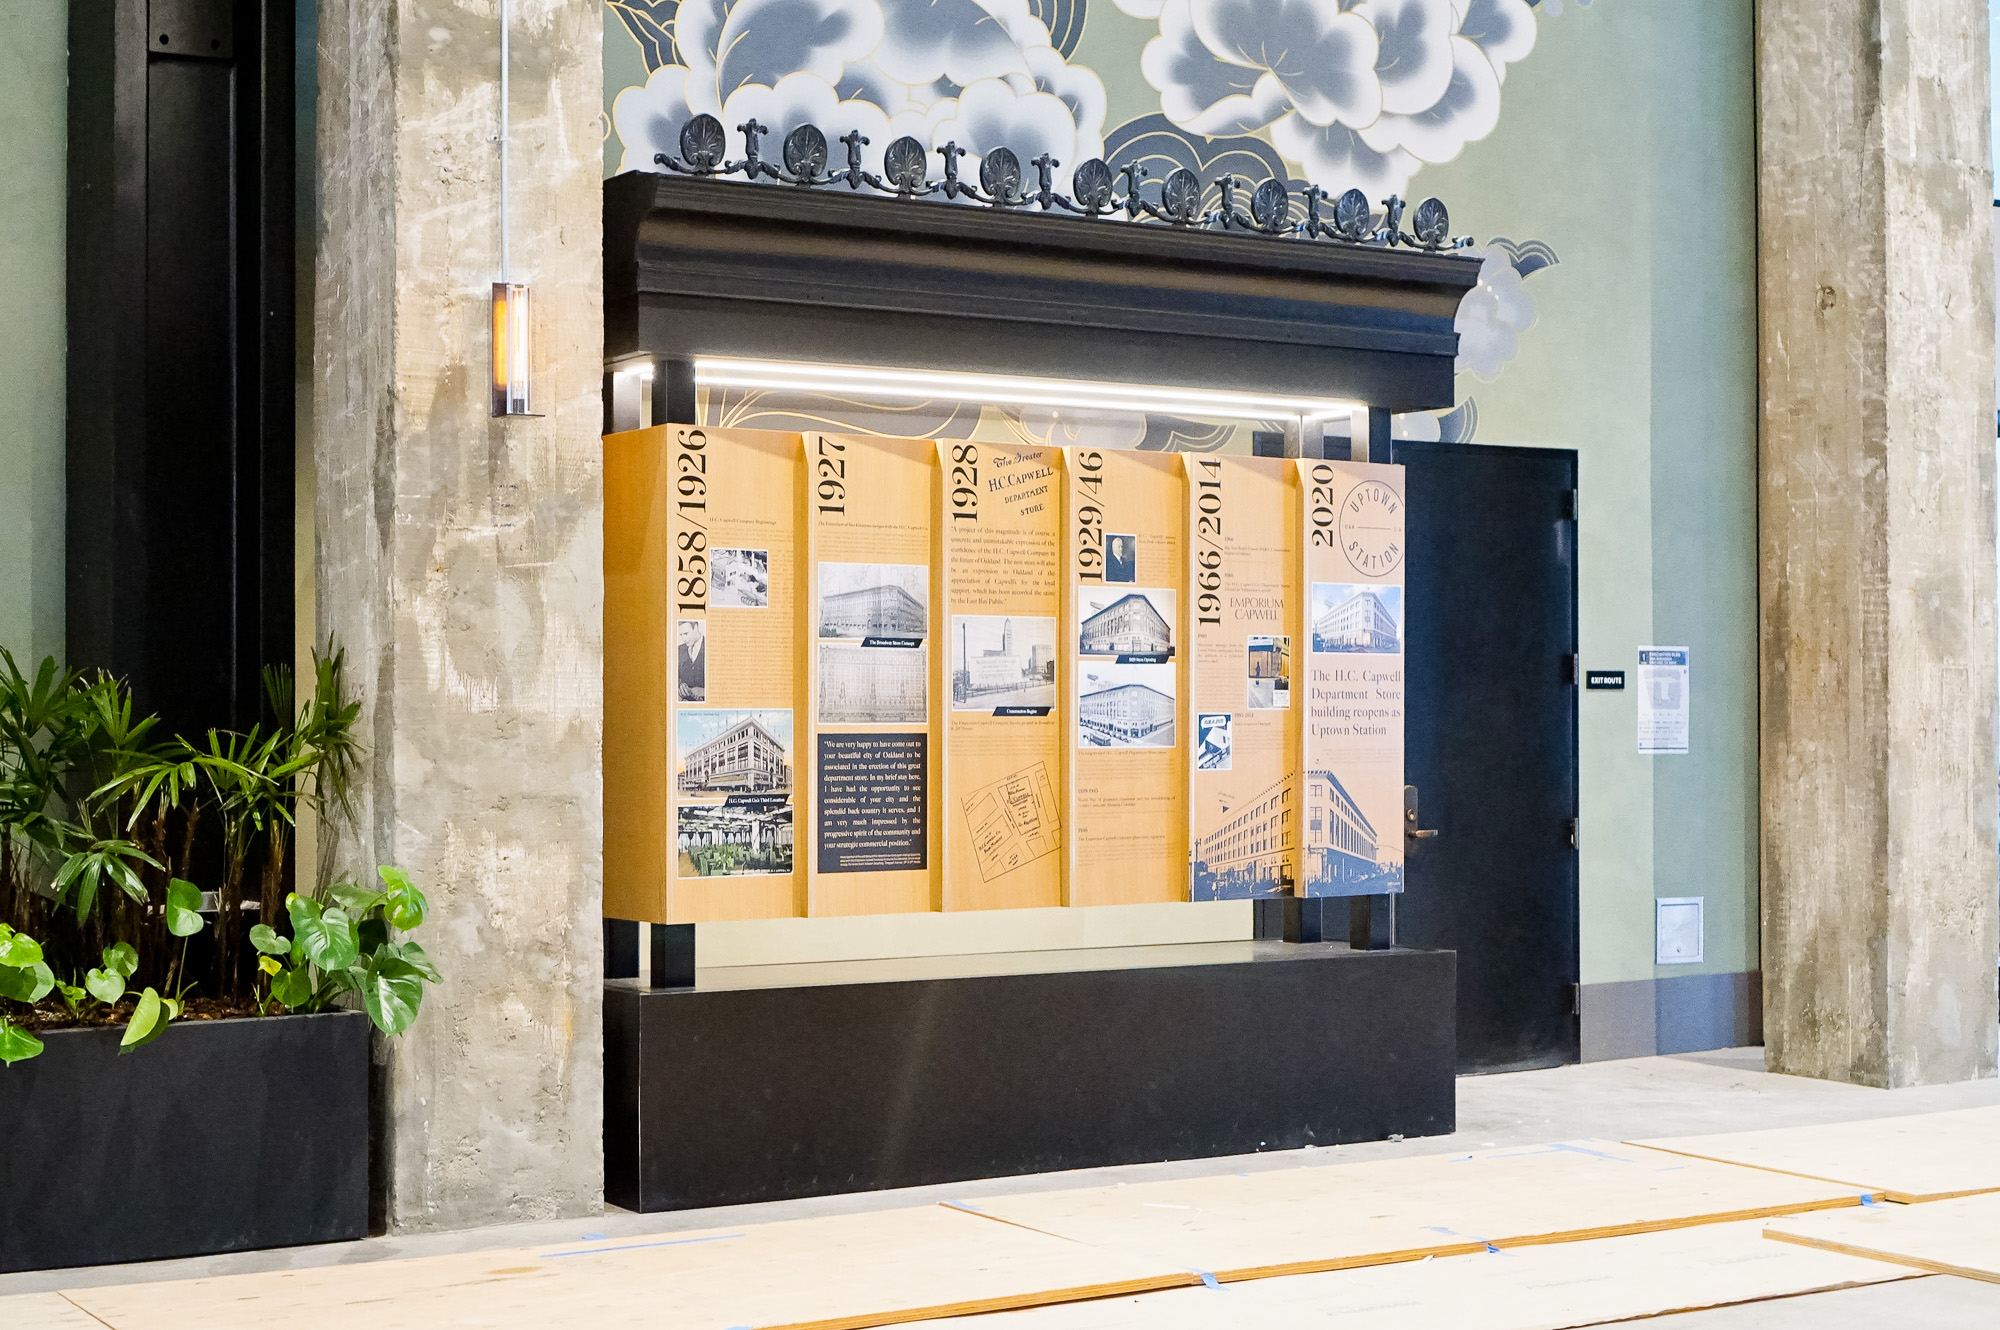 Wood/mixed media dimensional timeline display in the lobby of Uptown Station, an office and retail complex in a restored historic building located in downtown Oakland.